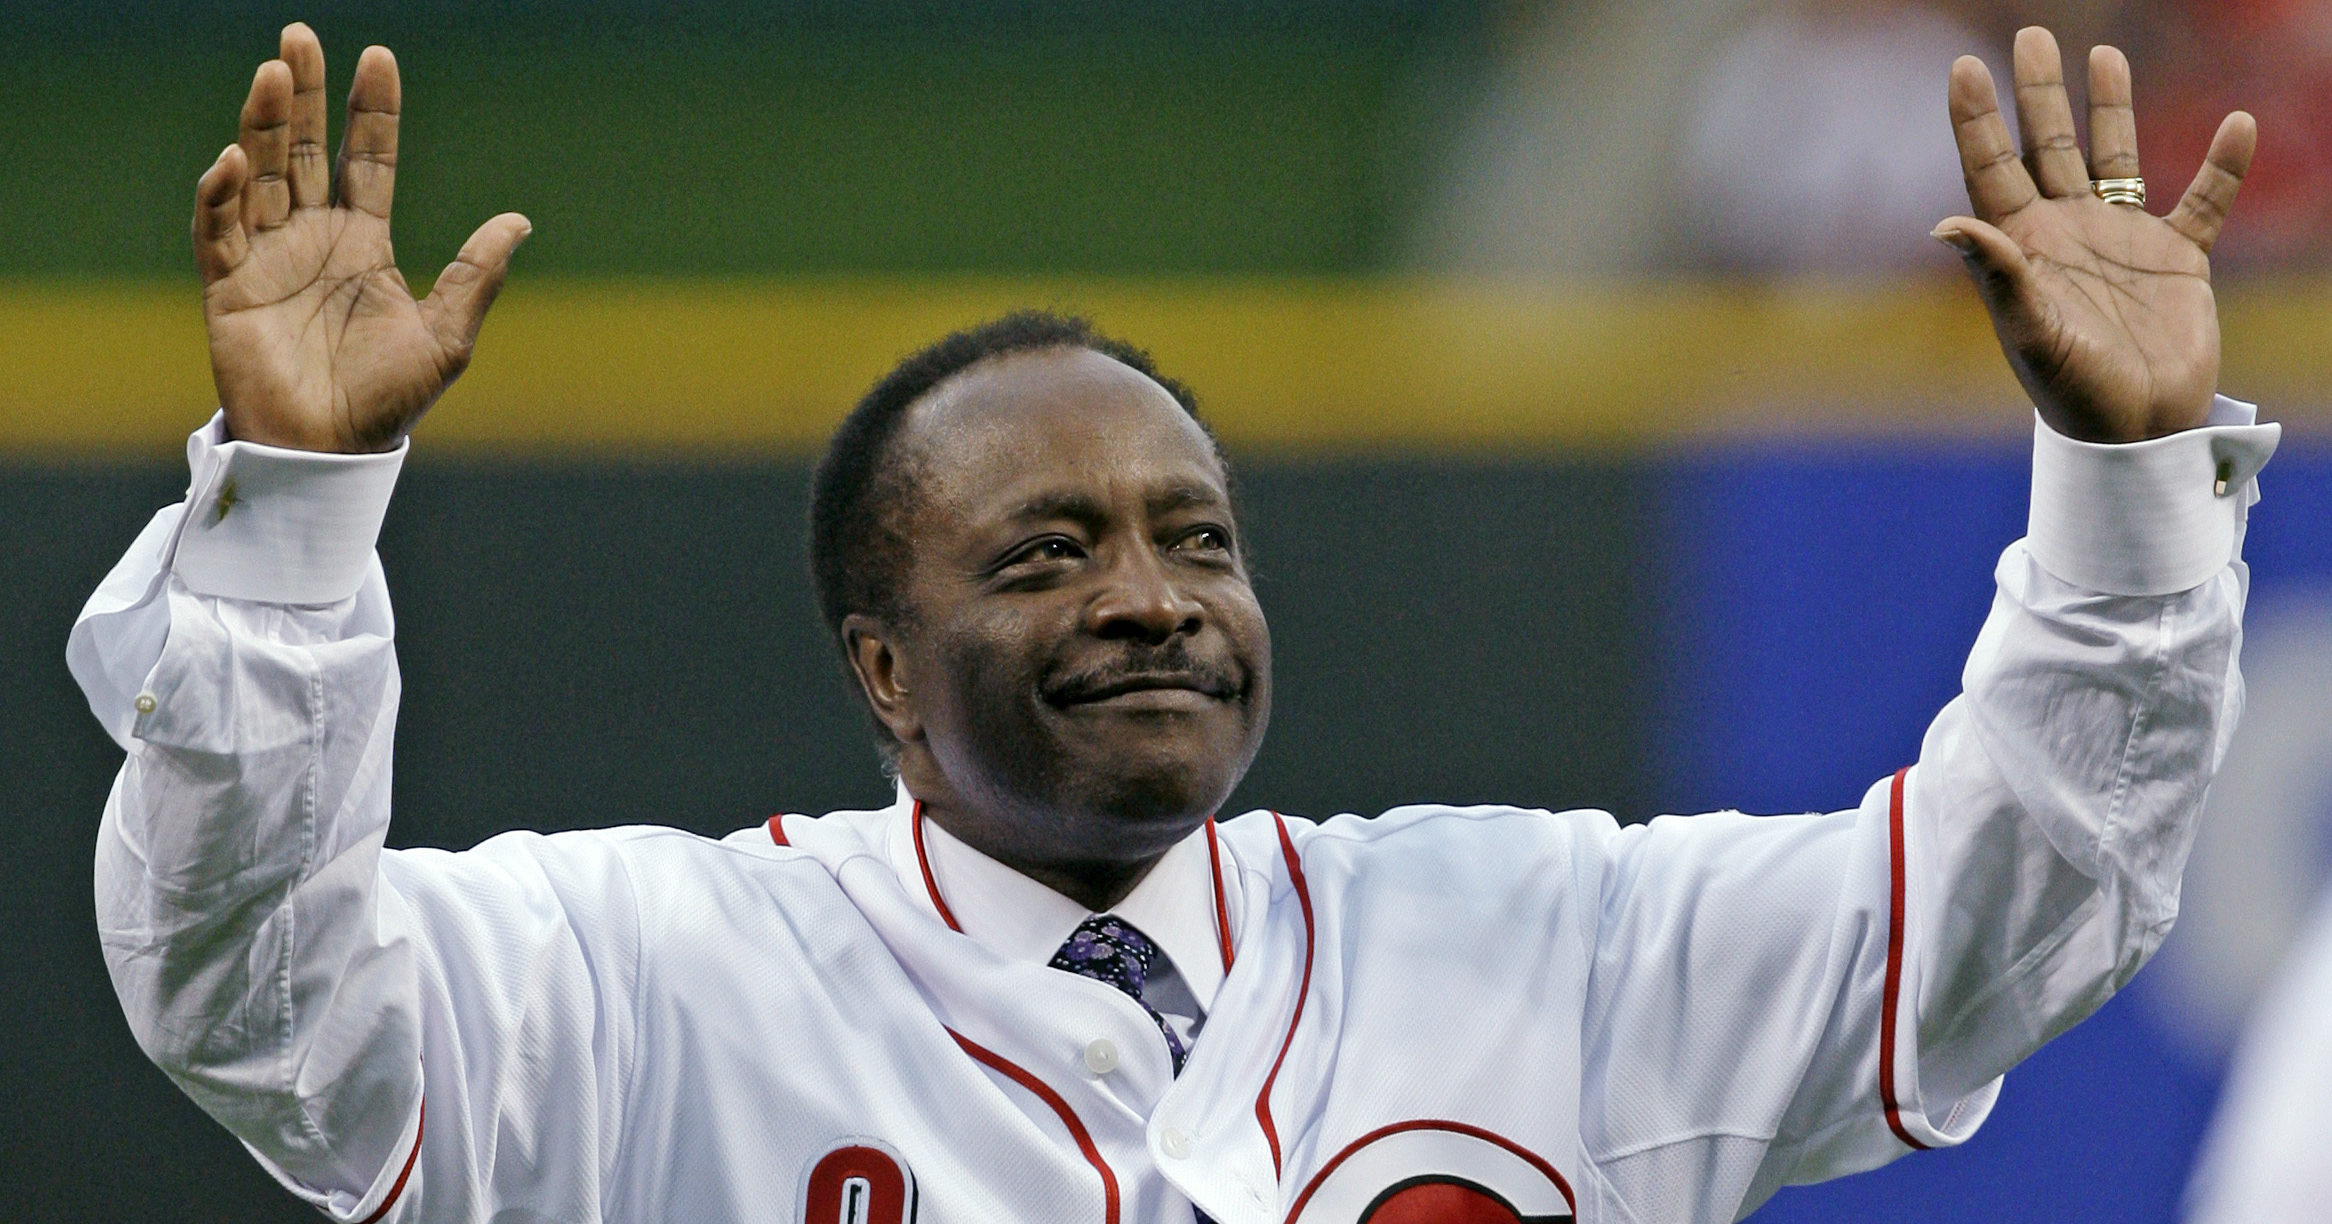 Cincinnati Reds Hall of Fame second baseman Joe Morgan acknowledges the crowd after throwing out a ceremonial first pitch prior to the Reds' game against the St. Louis Cardinals on April 7, 2010.